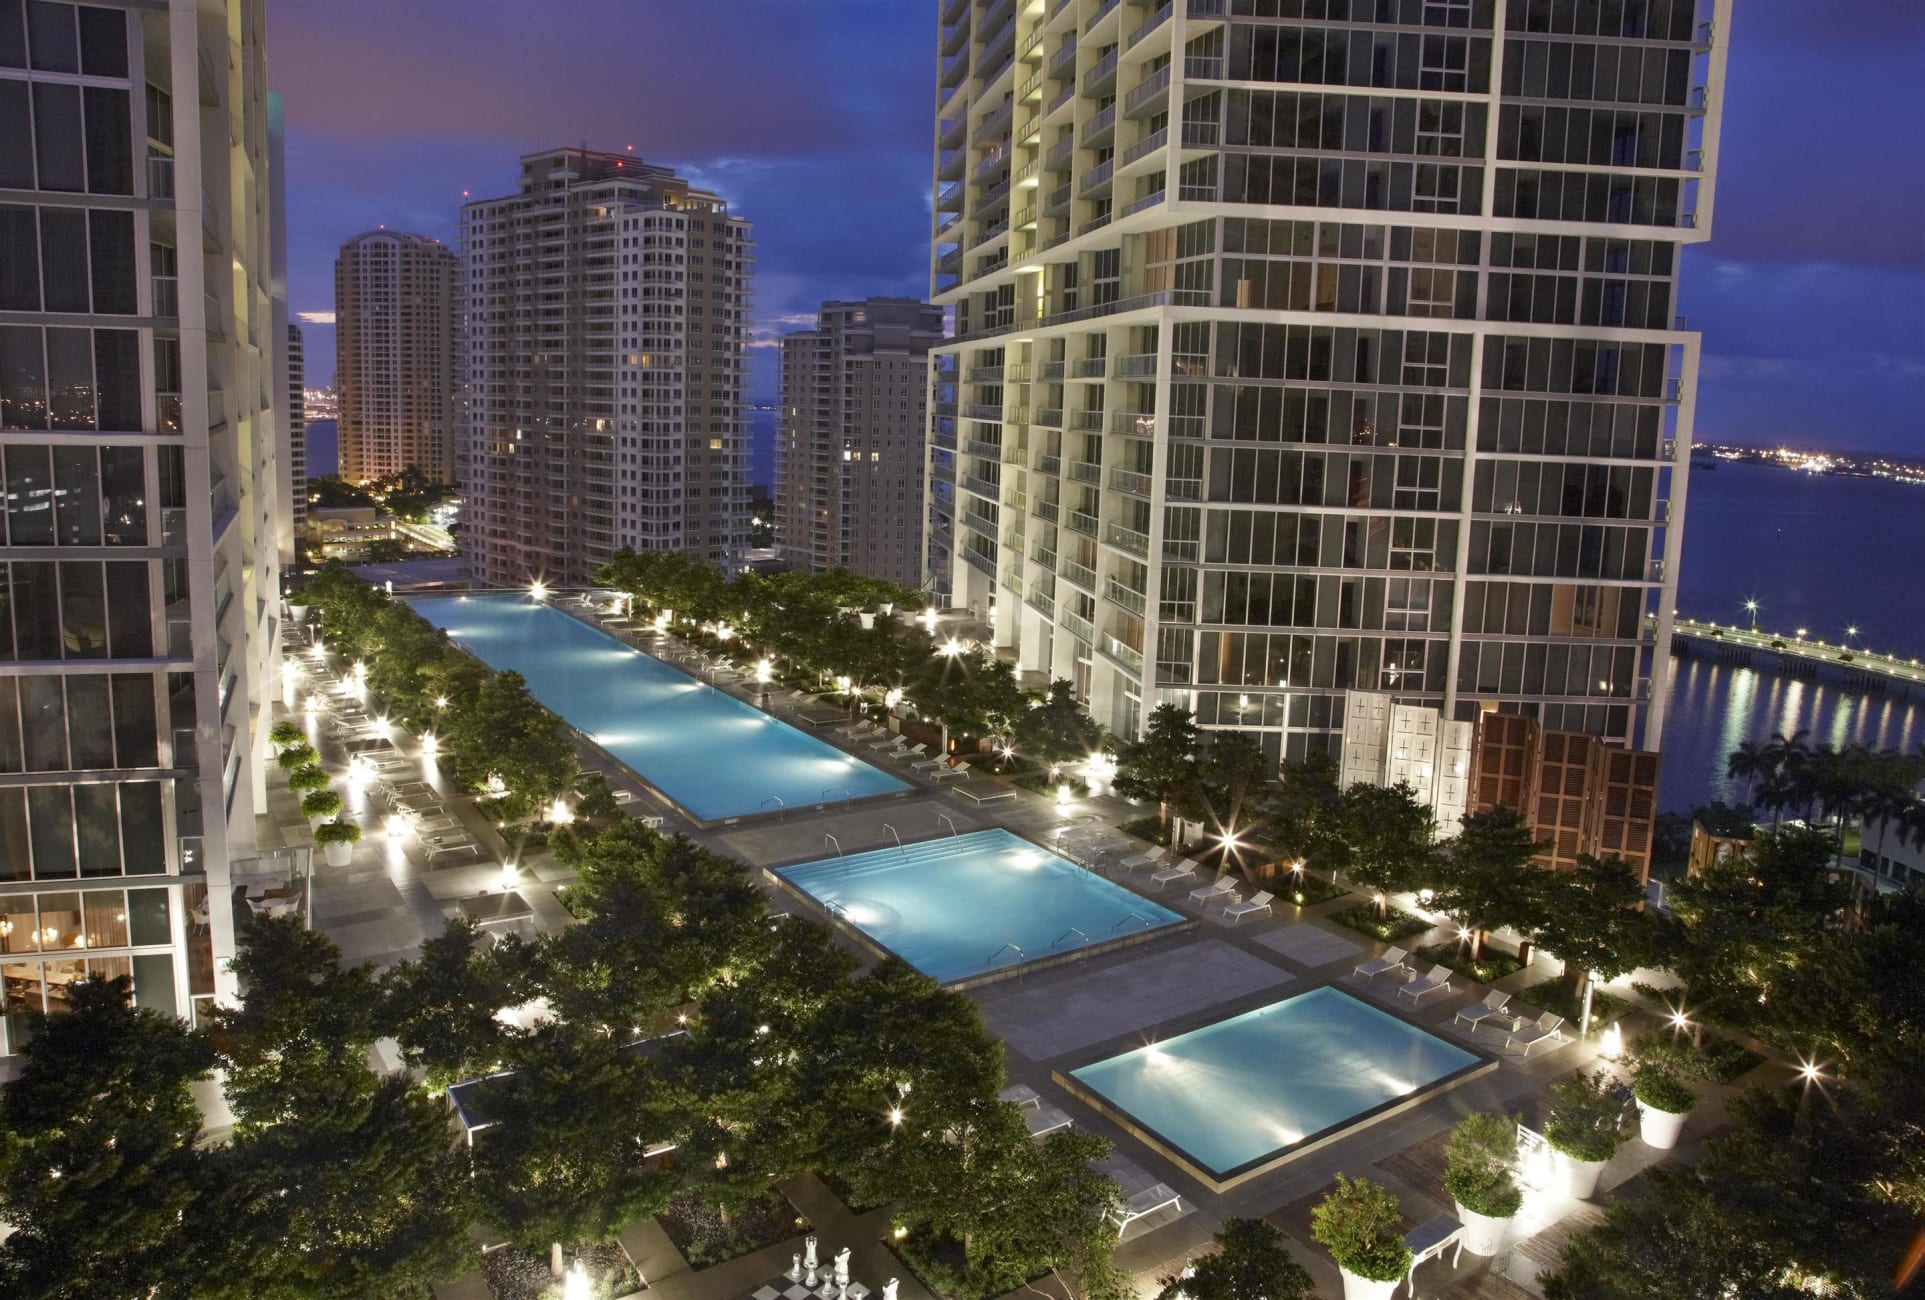 Dimensions In Cm  Miami Hotels